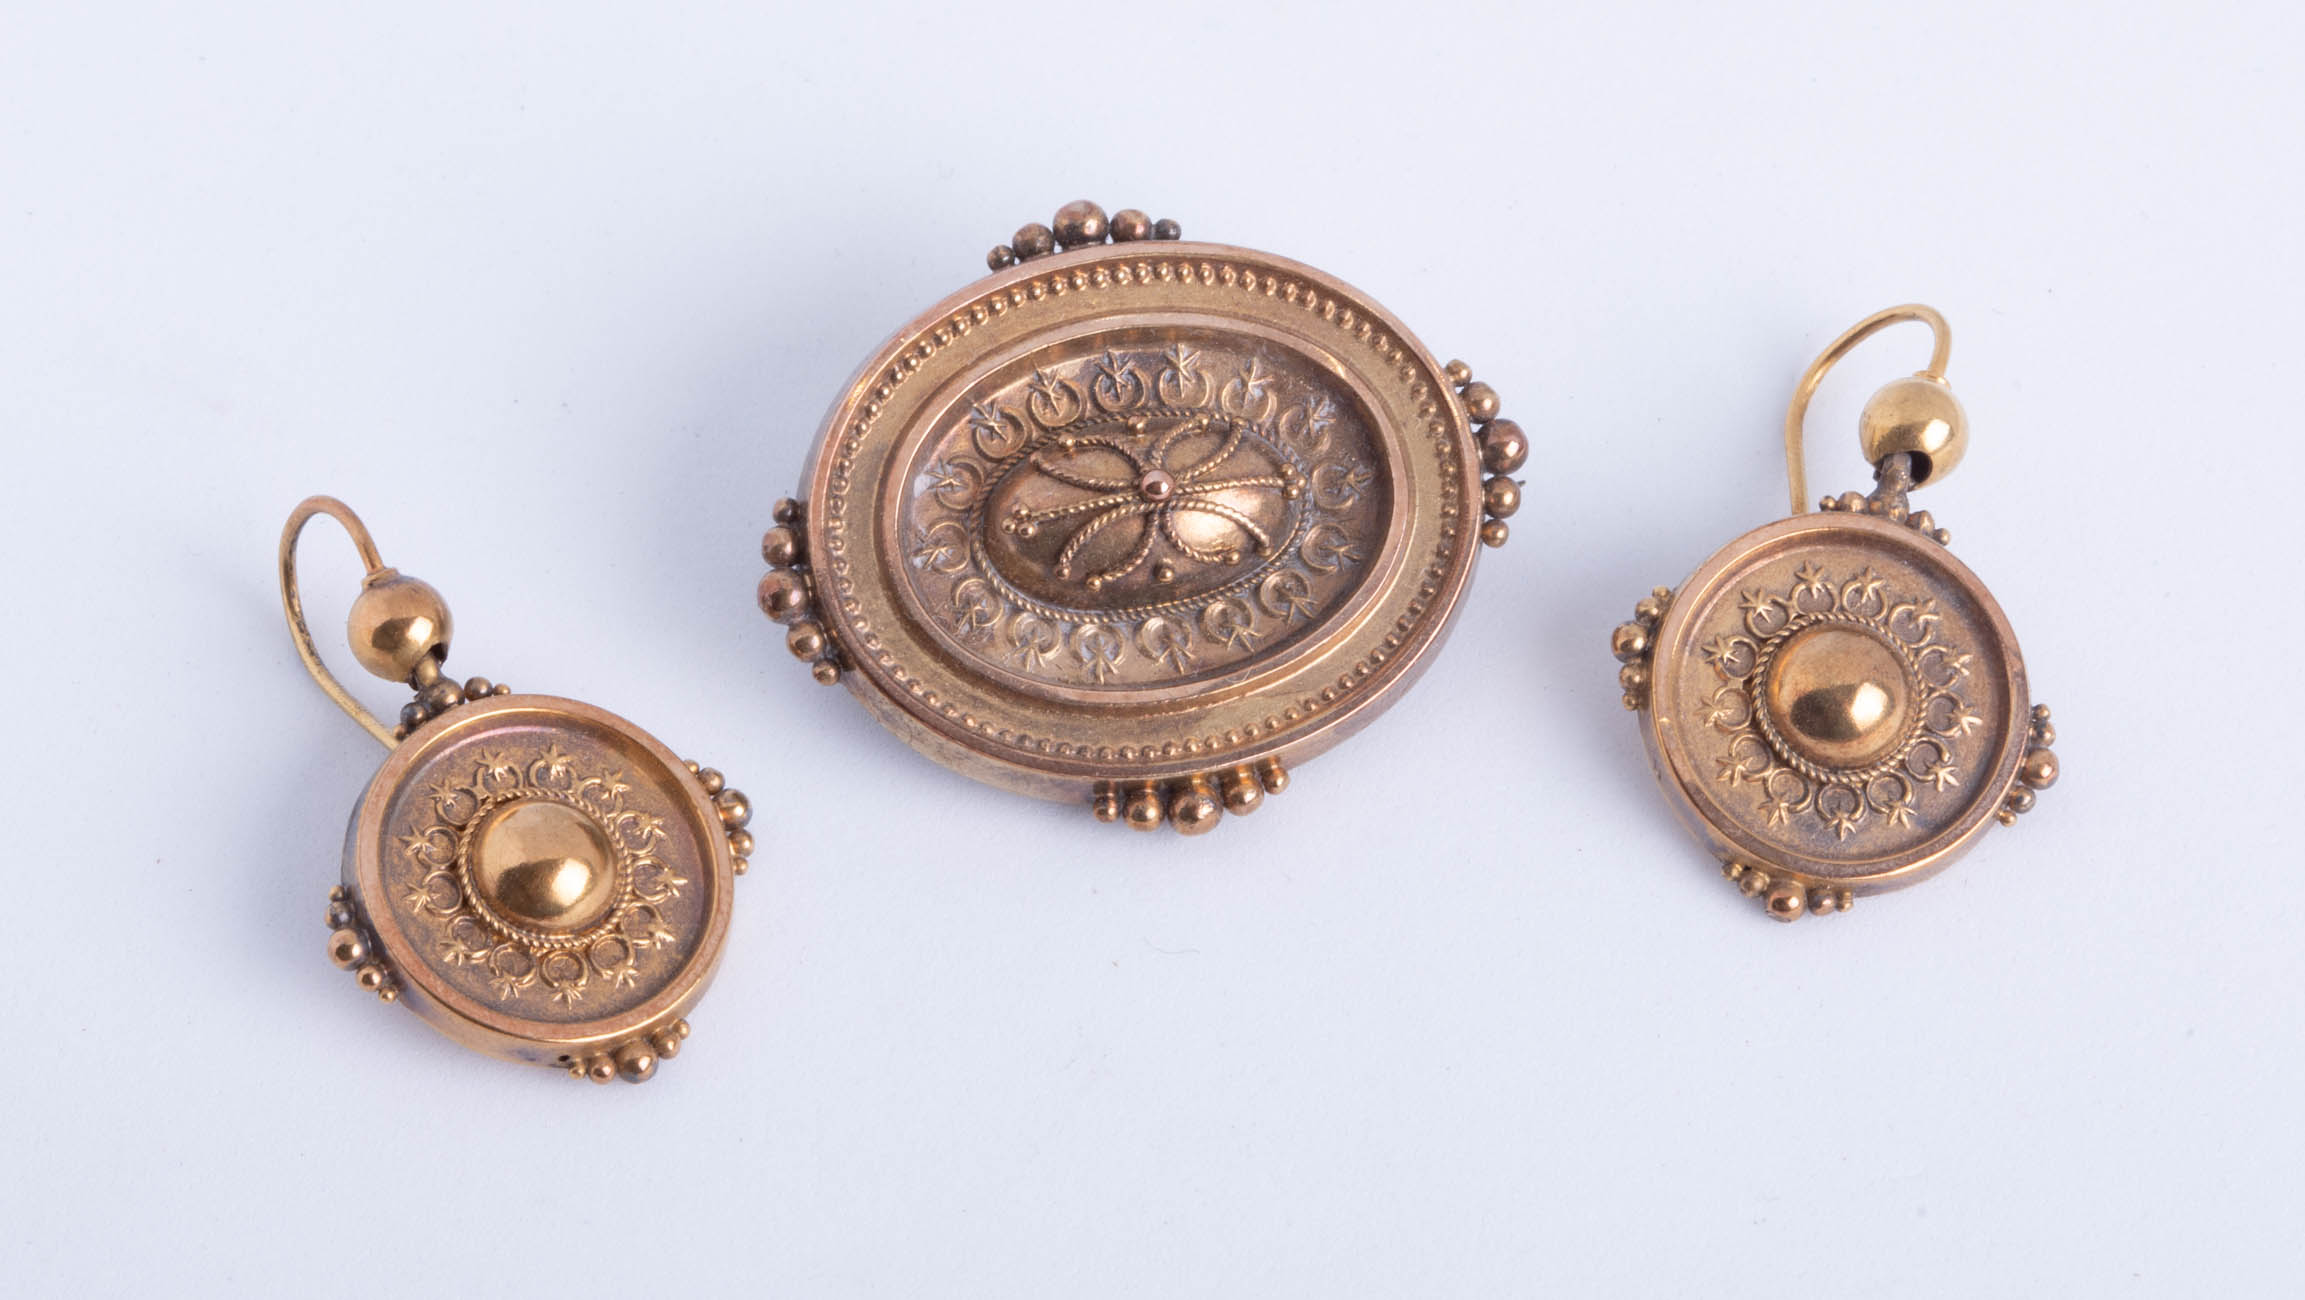 Lot 022 - An Edwardian three piece gold brooch and earrings set, boxed.